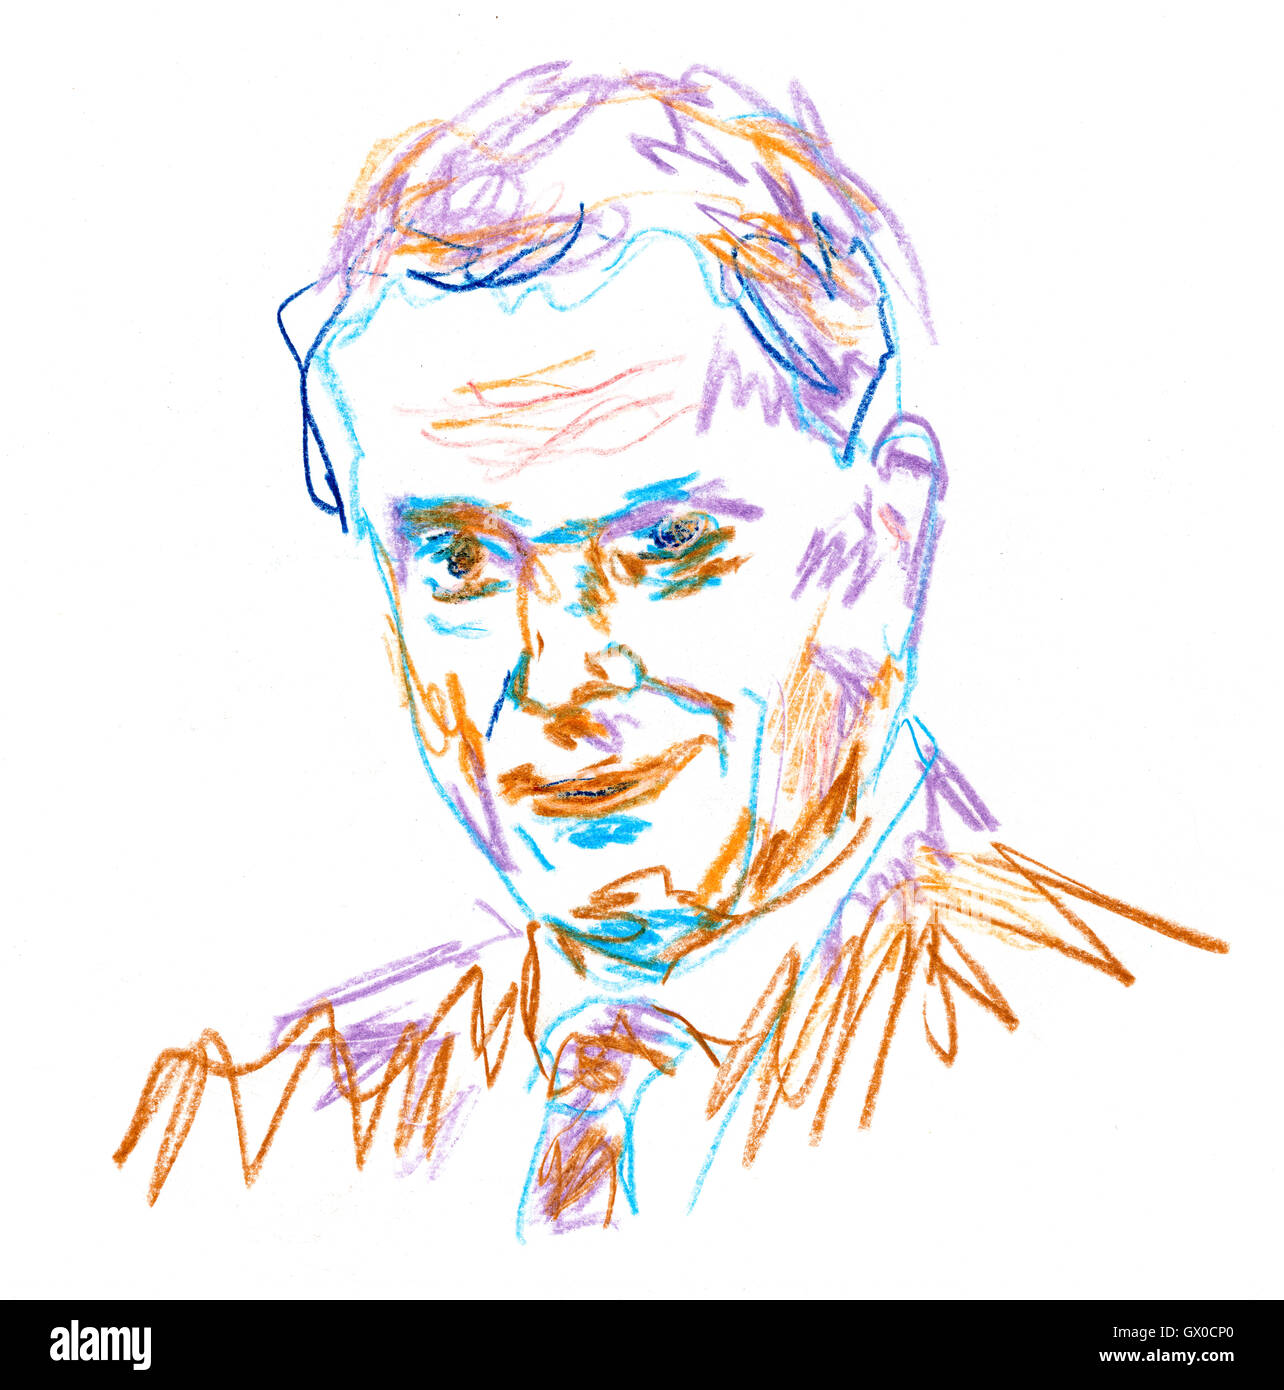 President of Finland, Sauli Niinistö in Color Pencil Drwing - Stock Image